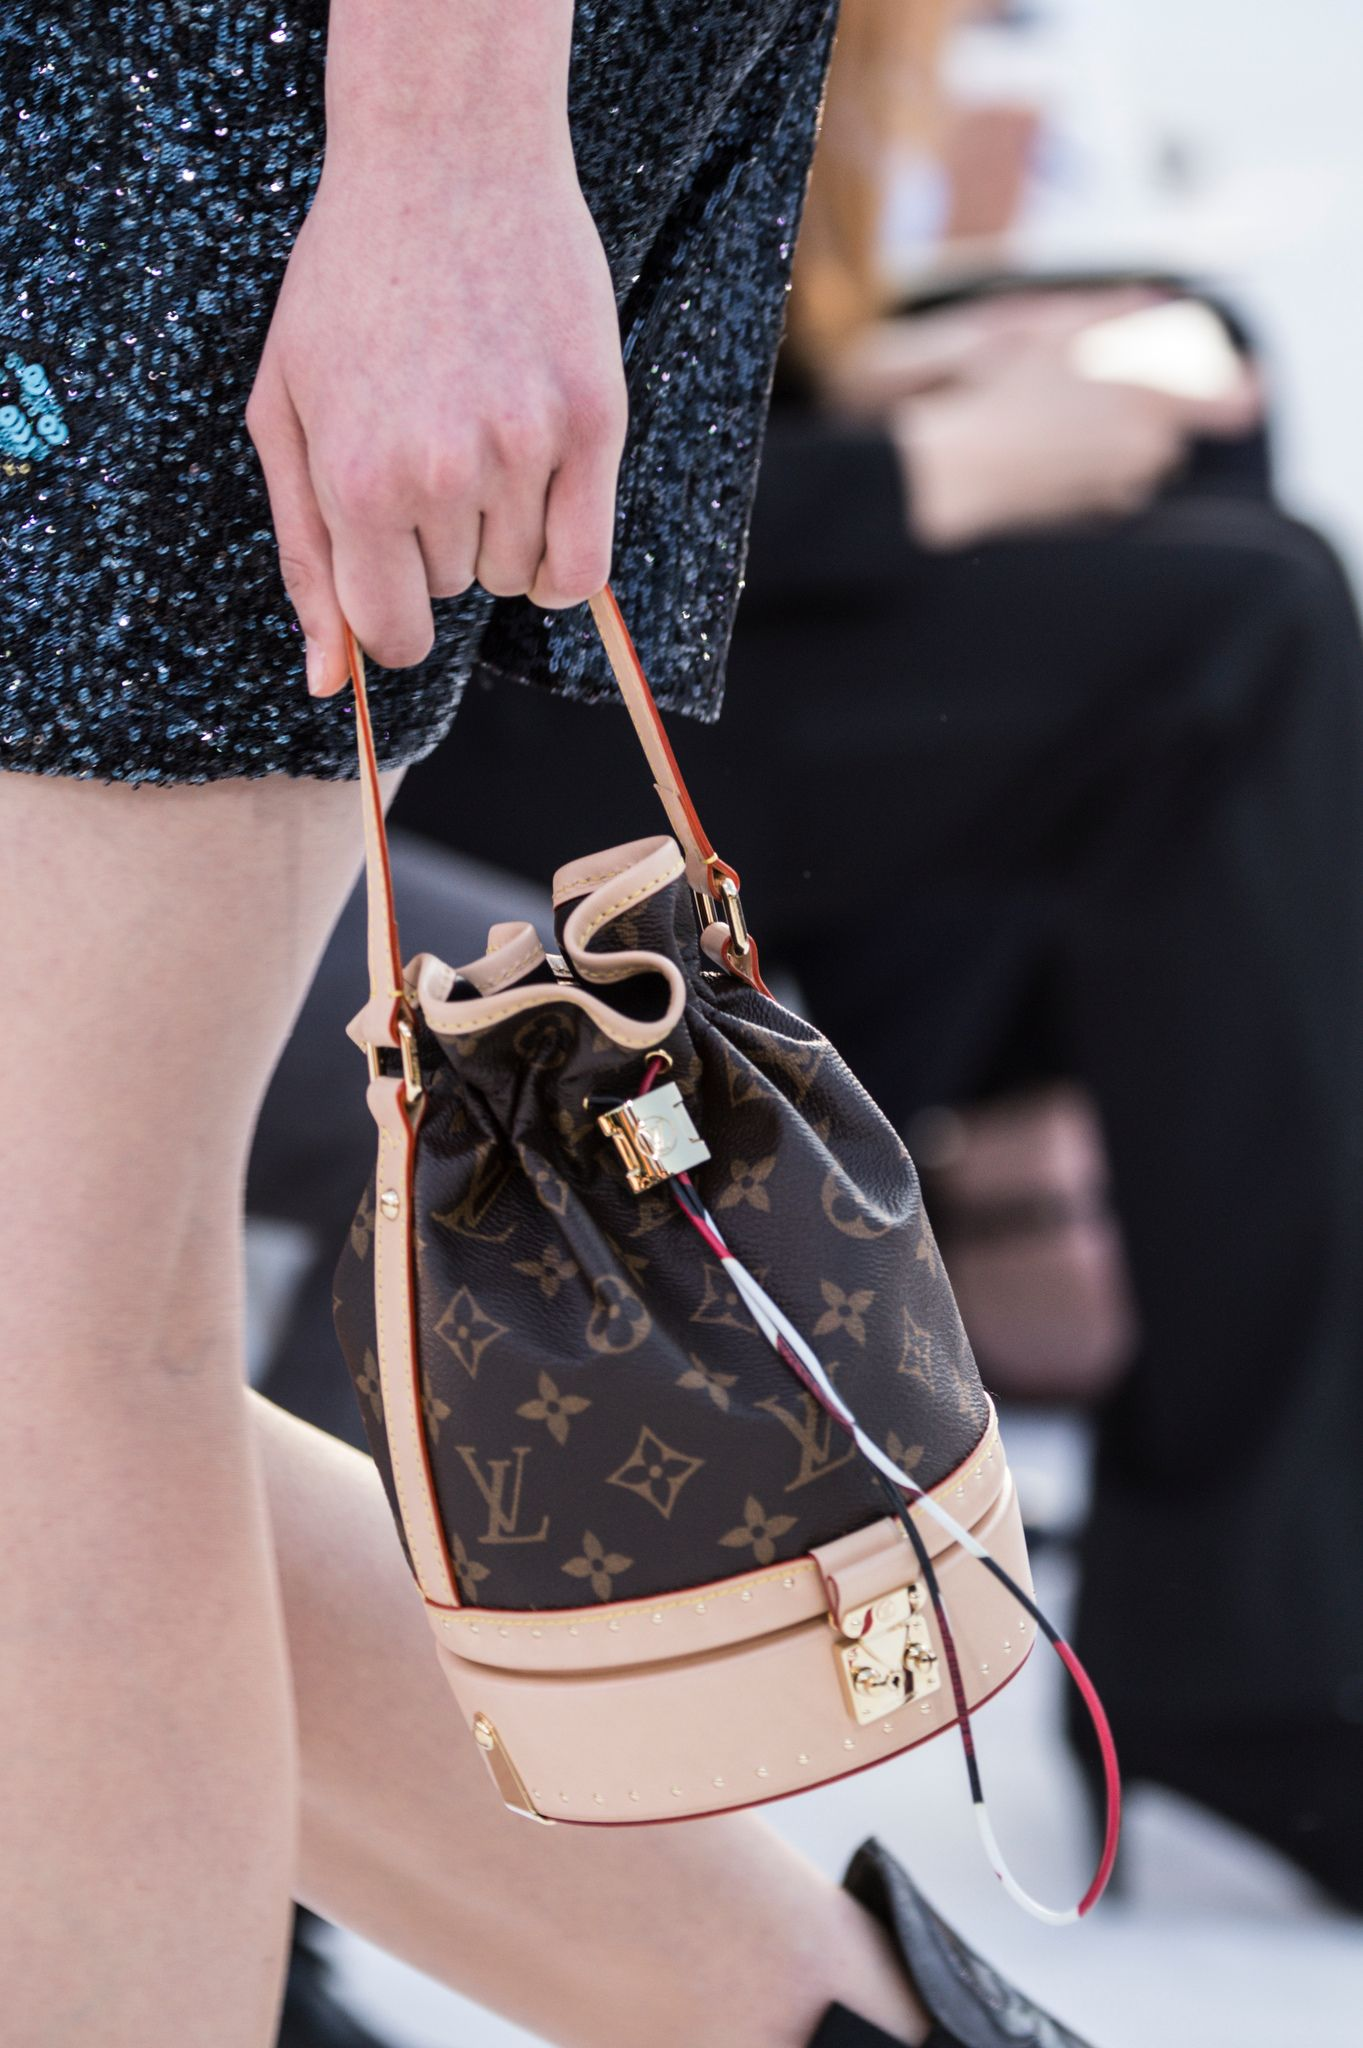 Pictures Of All The Bags You Need To See From The Louis Vuitton Resort 2018 Show At The Miho Museum In Ky Louis Vuitton Handbags Louis Vuitton Trending Handbag